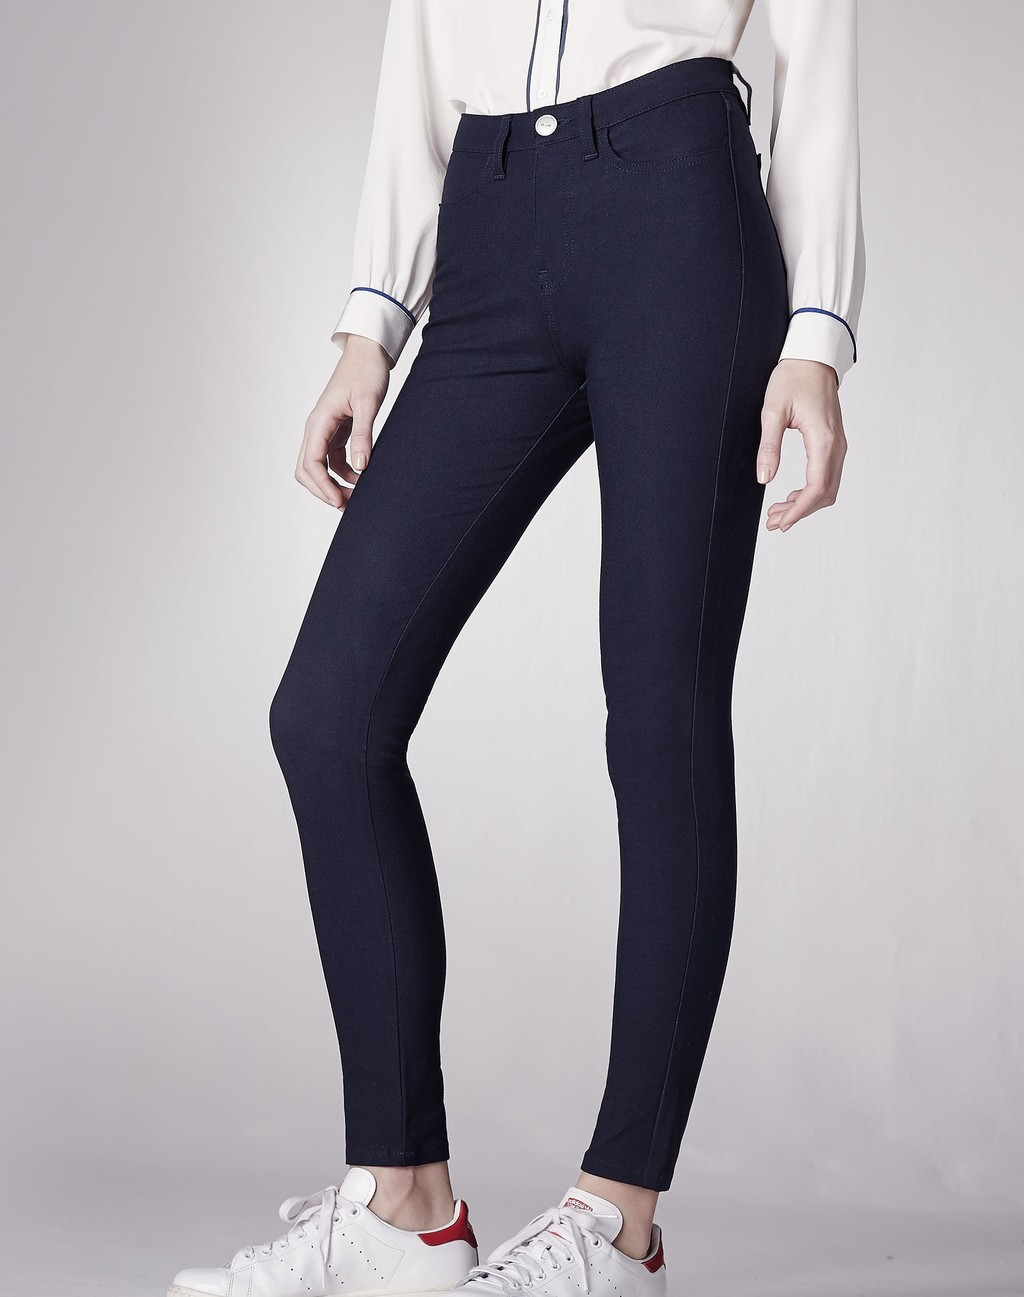 High Rise Stretch Gabardine Skinny Trouser Dark Navy - style: skinny leg; length: standard; pattern: plain; waist: high rise; predominant colour: navy; occasions: casual; fibres: cotton - stretch; texture group: denim; pattern type: fabric; season: a/w 2015; wardrobe: basic